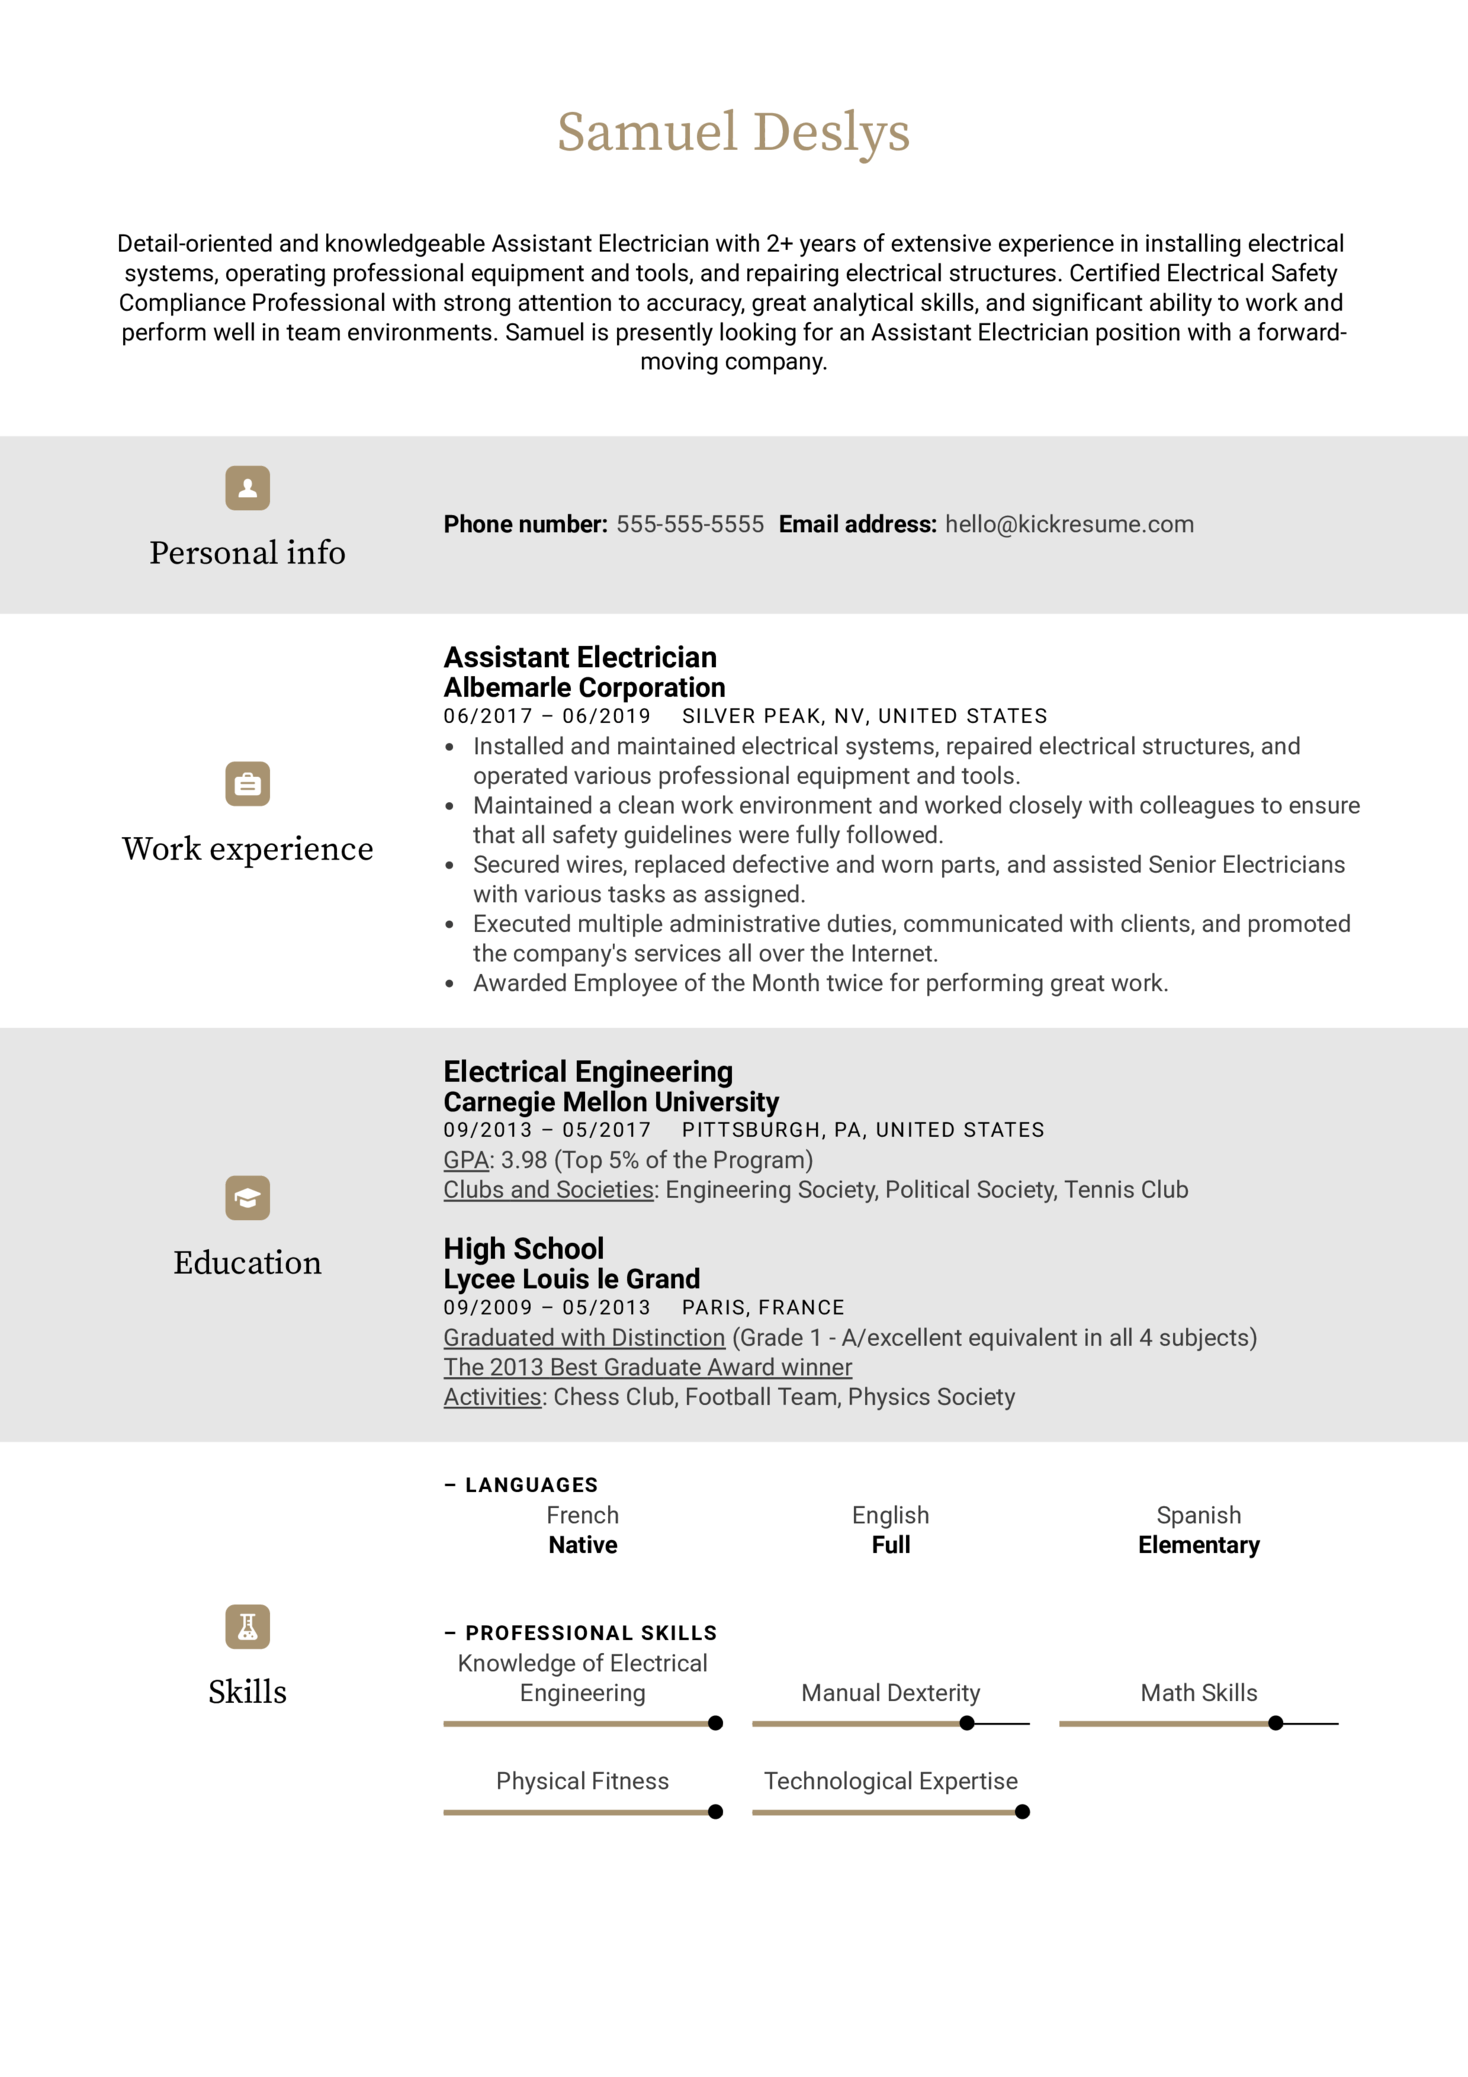 Assistant Electrician Resume Sample (Teil 1)